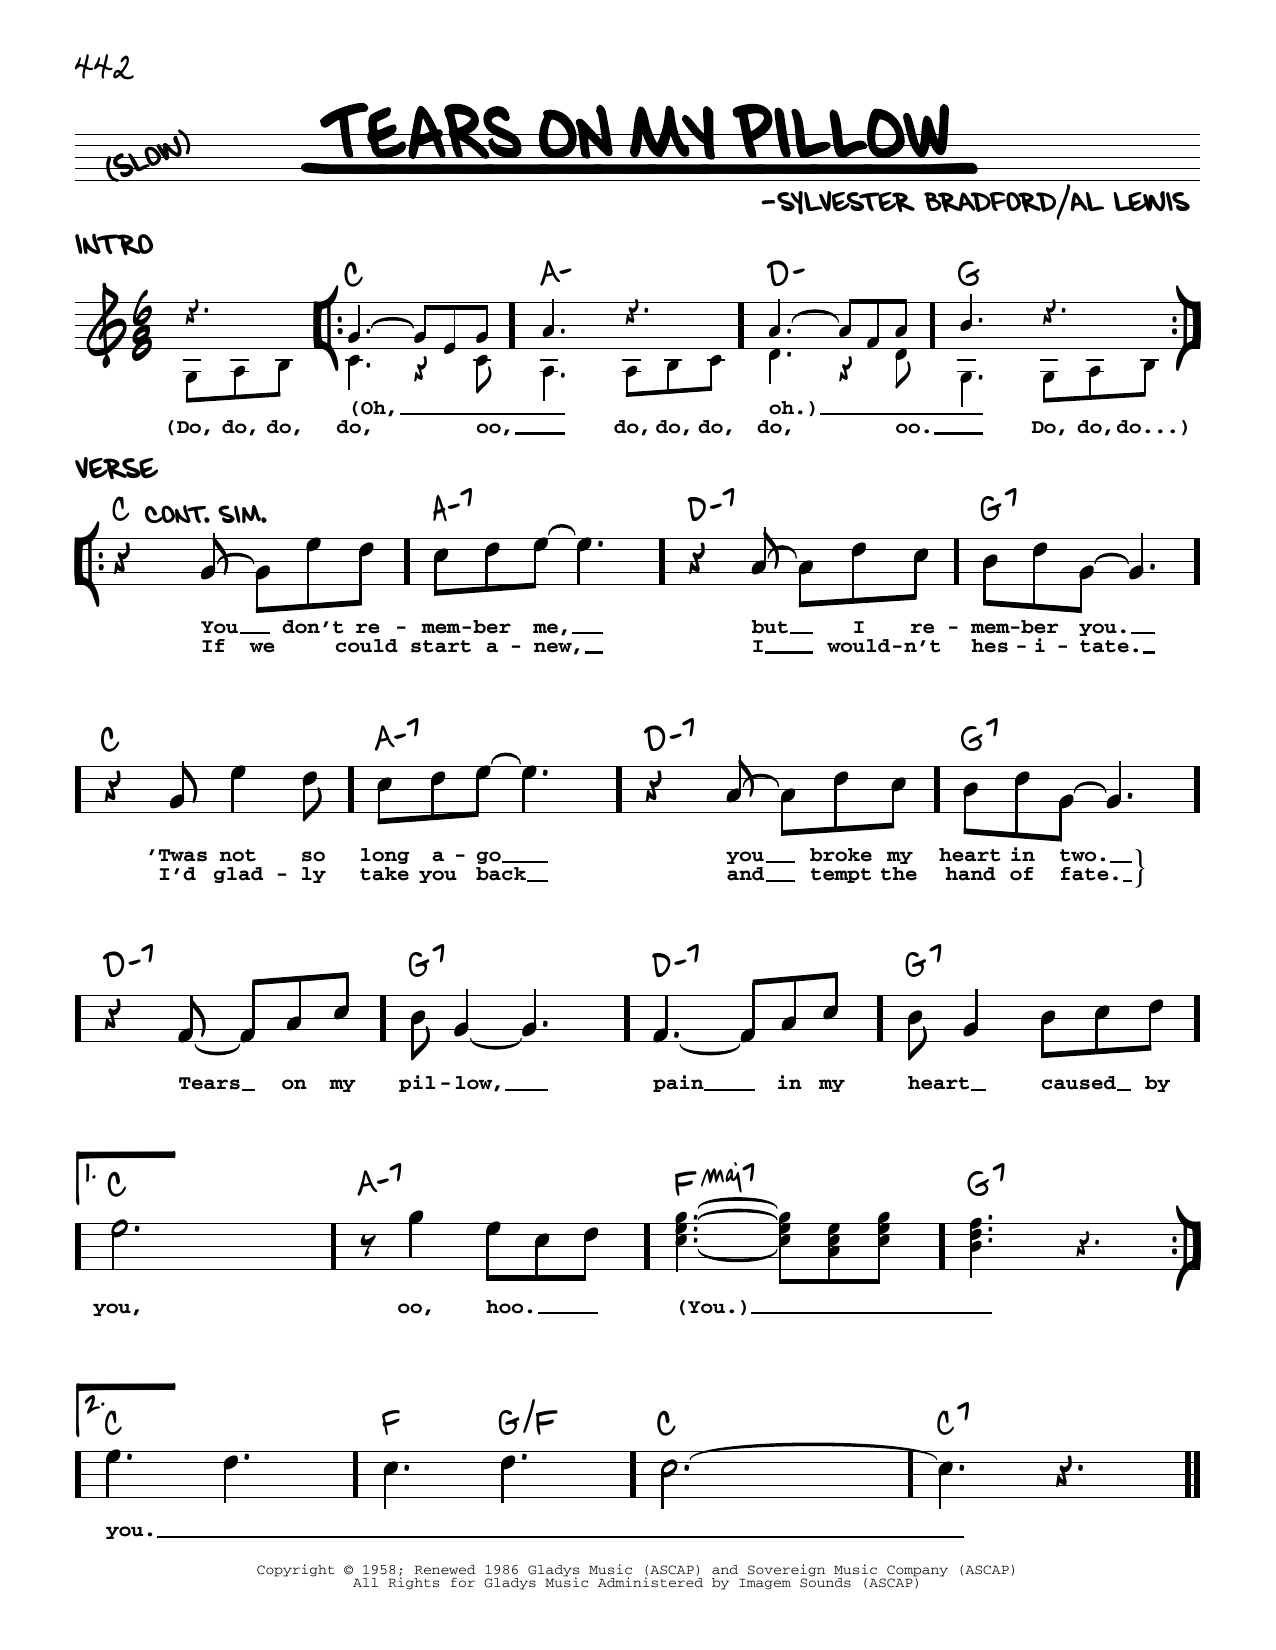 Little Anthony The Imperials Tears On My Pillow Sheet Music Notes Download Pdf Score Printable